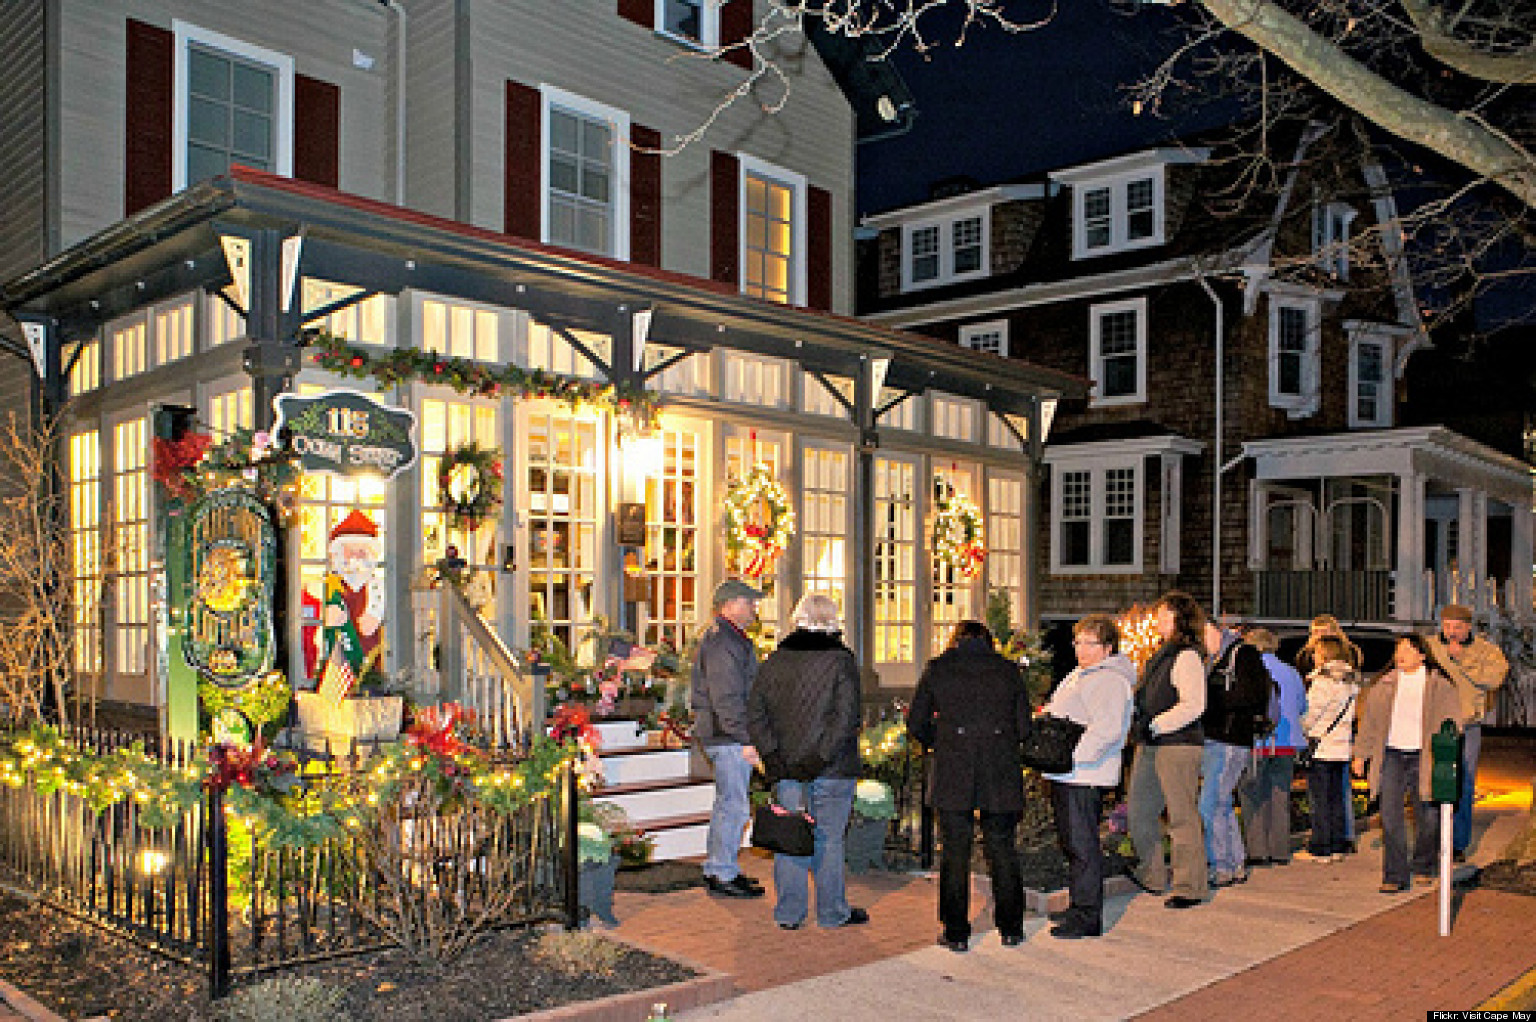 Best Christmas Decorations In Northern Nj : Celebrate the holidays on jersey shore kathleen beckett